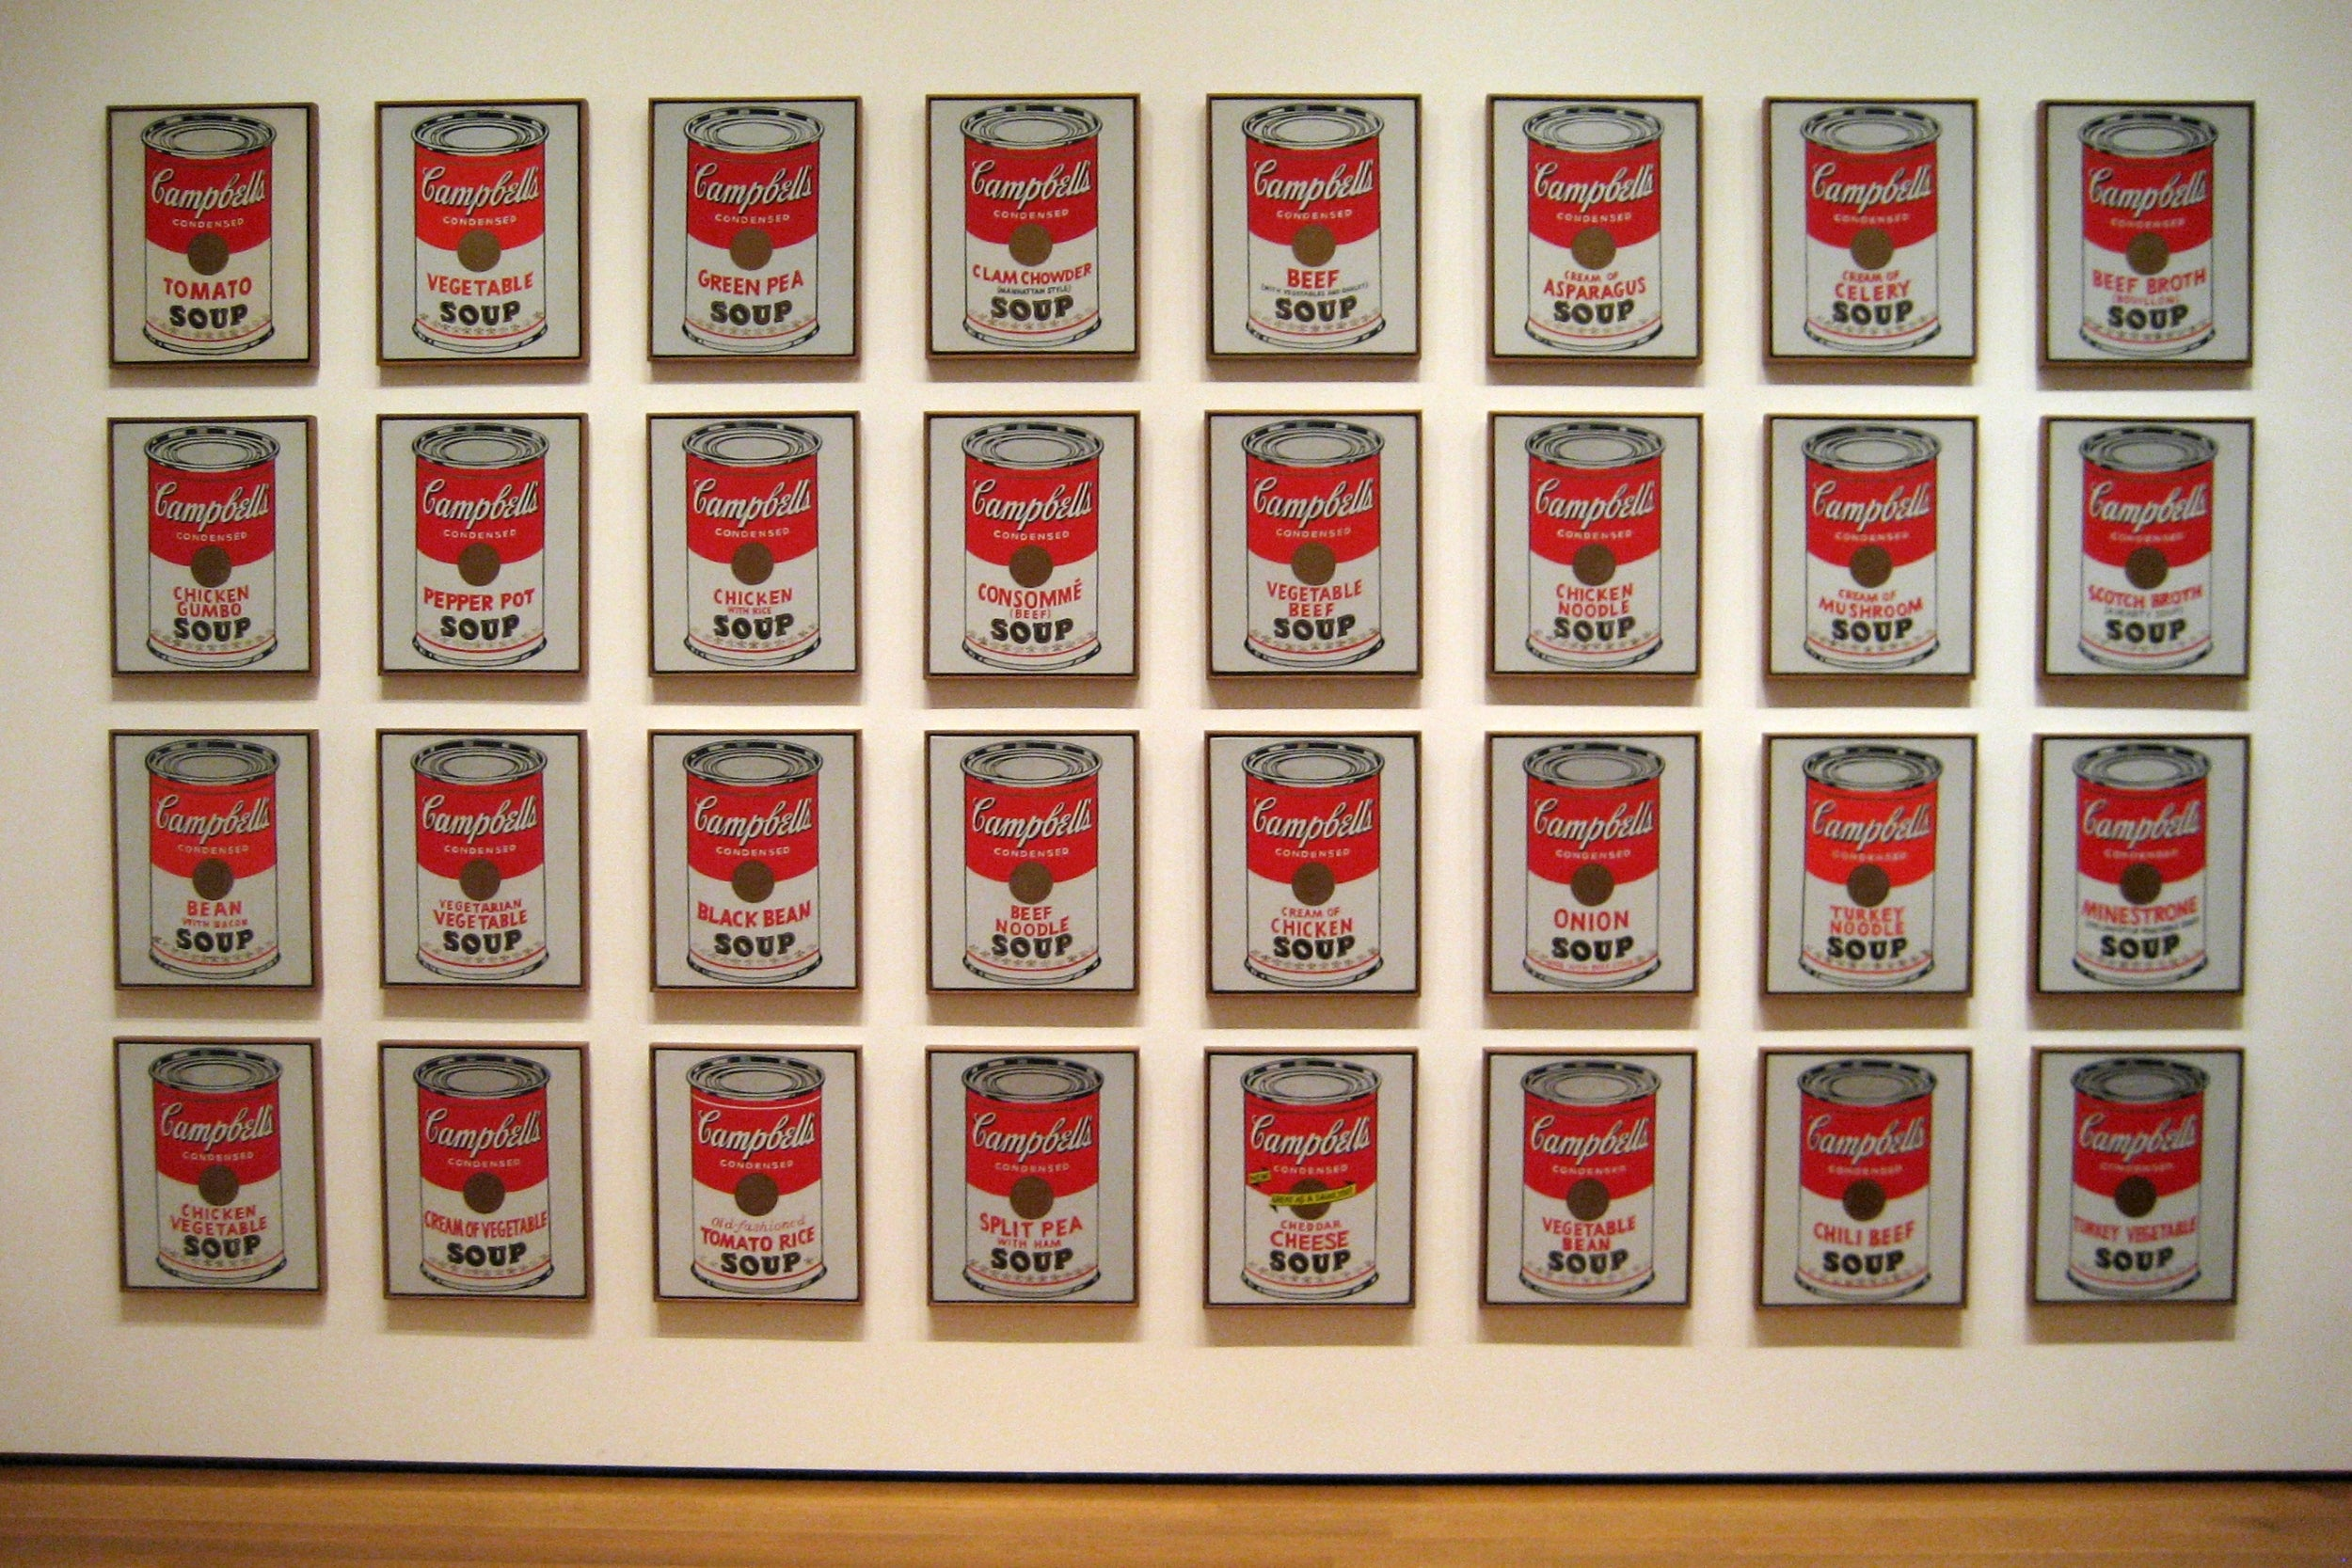 Andy warhol's Campbell's Soup Cans (1962), Andy Warhol at the Museum of Modern Art, New York